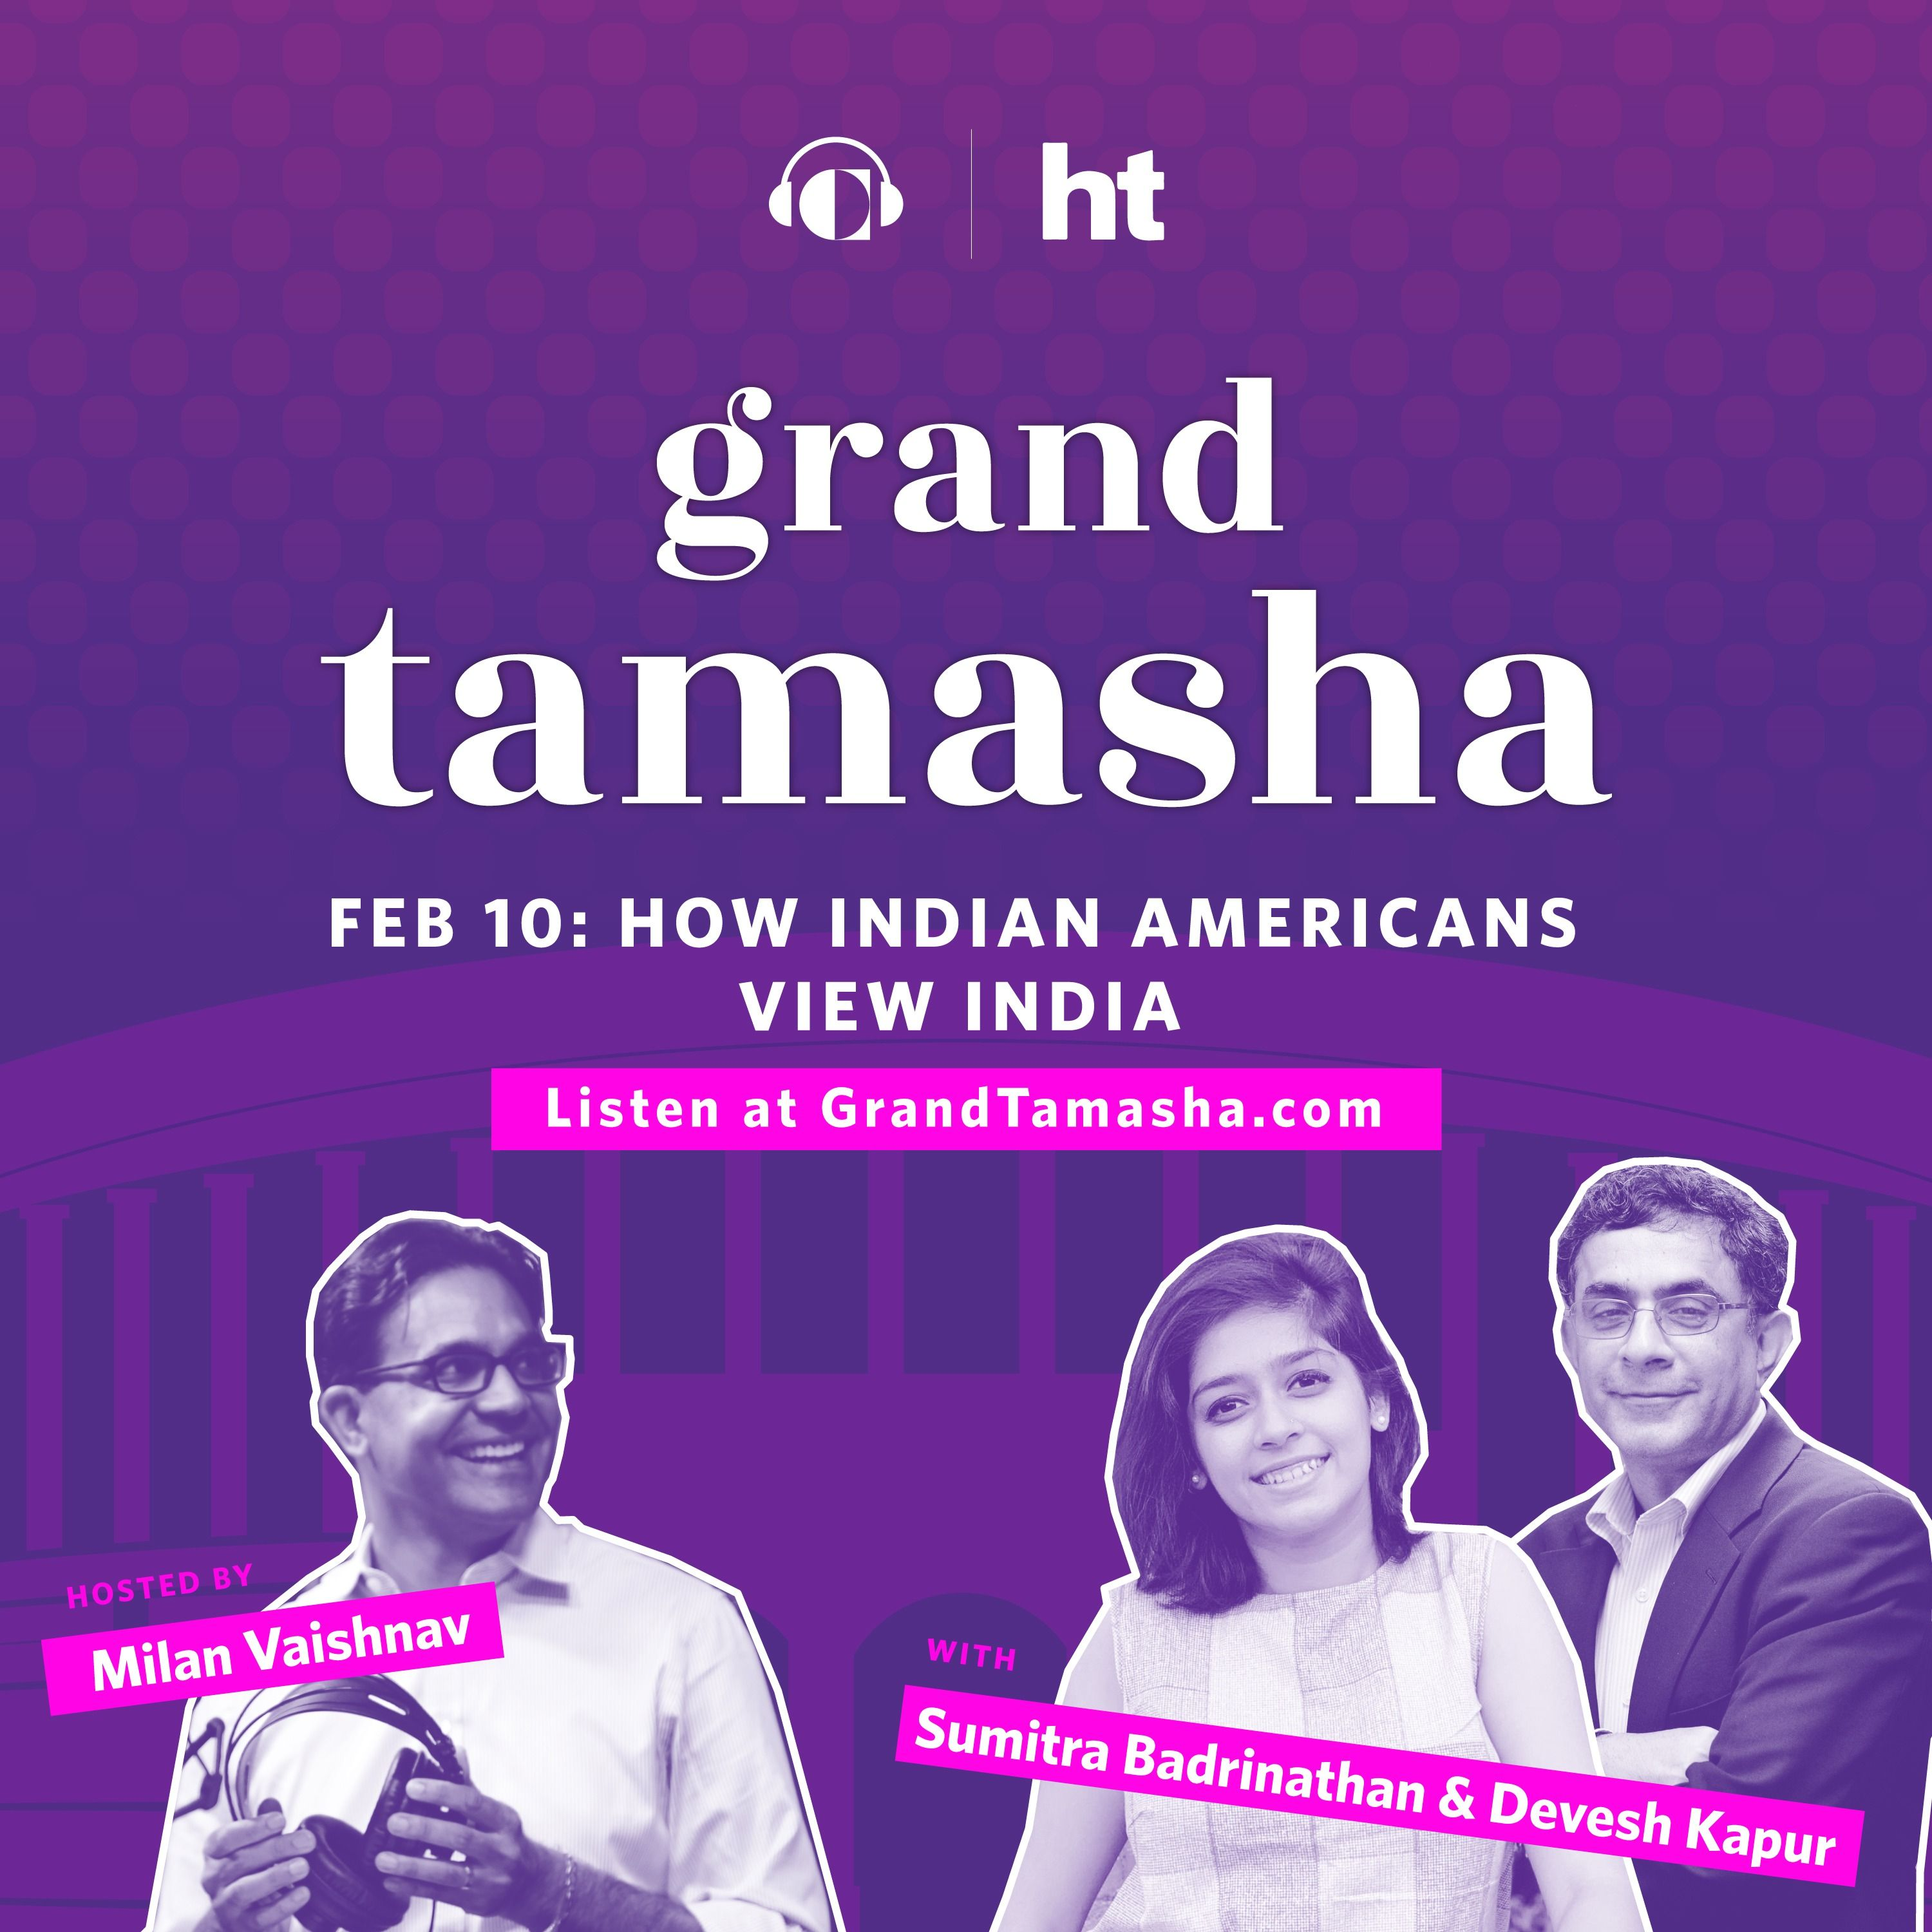 Sumitra Badrinathan and Devesh Kapur on How Indian Americans View India